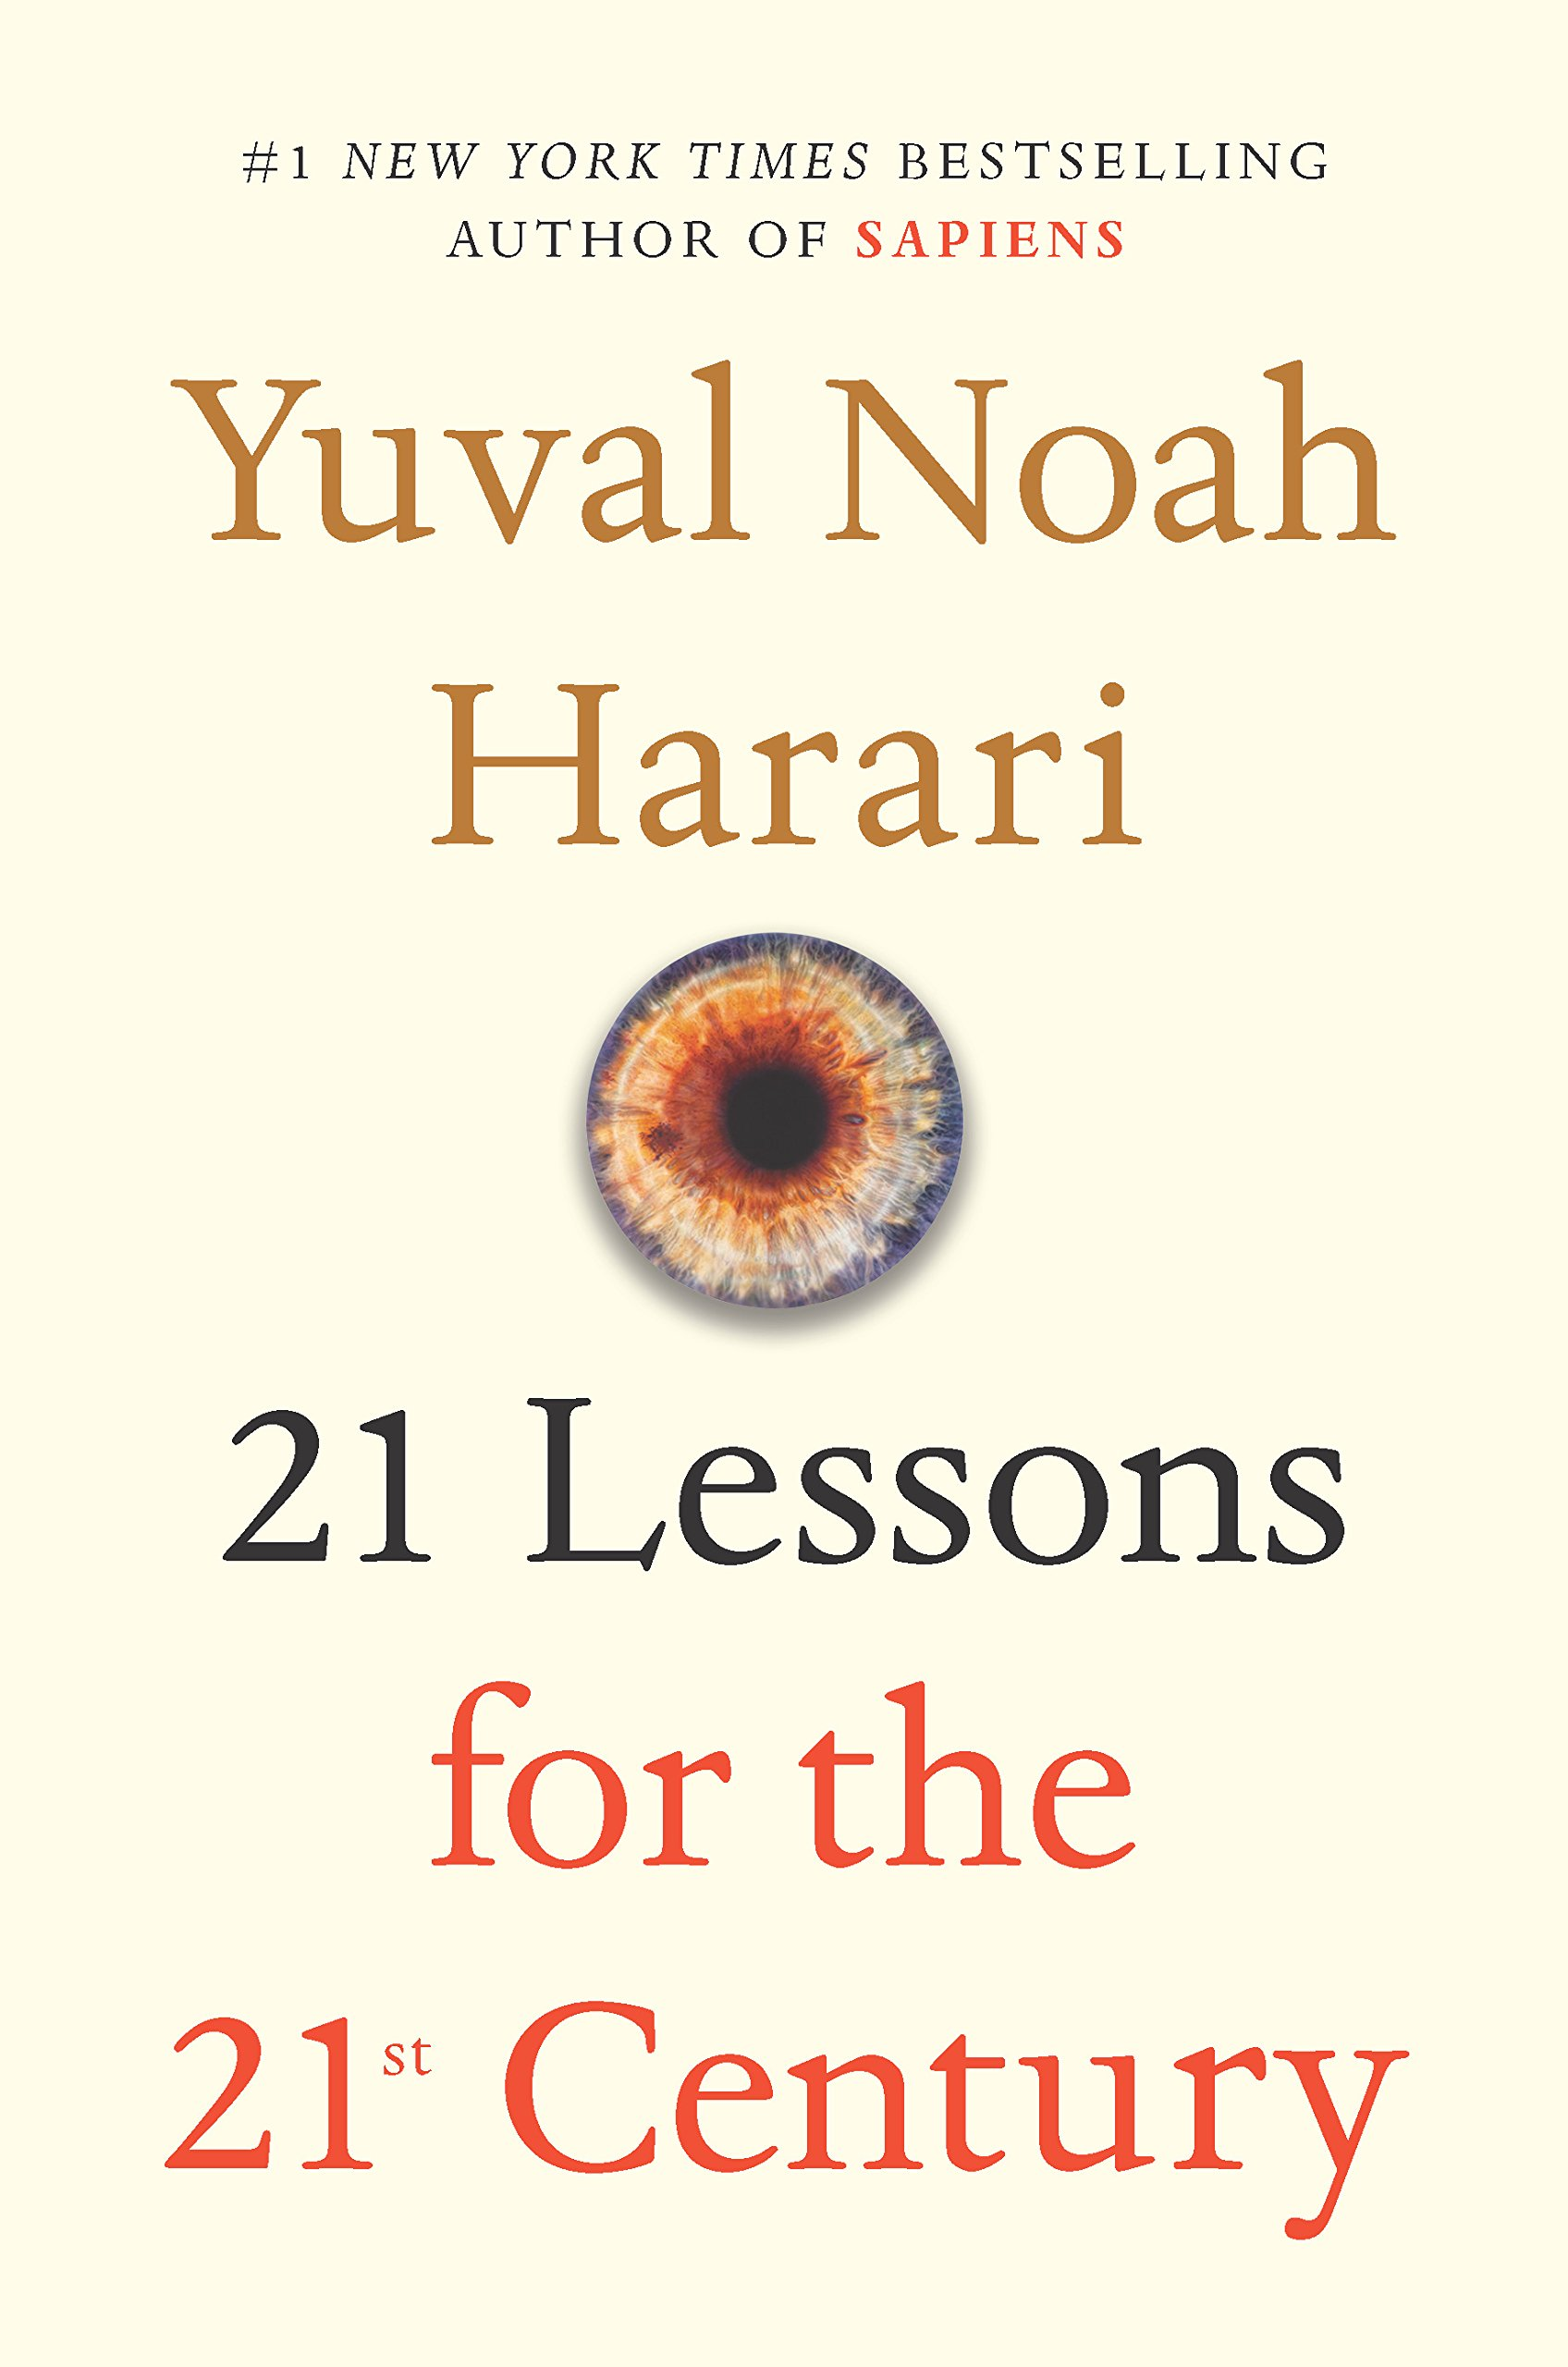 Yuval Harari's 21 laws for the 21st Centry UCOT BOOKS.jpg